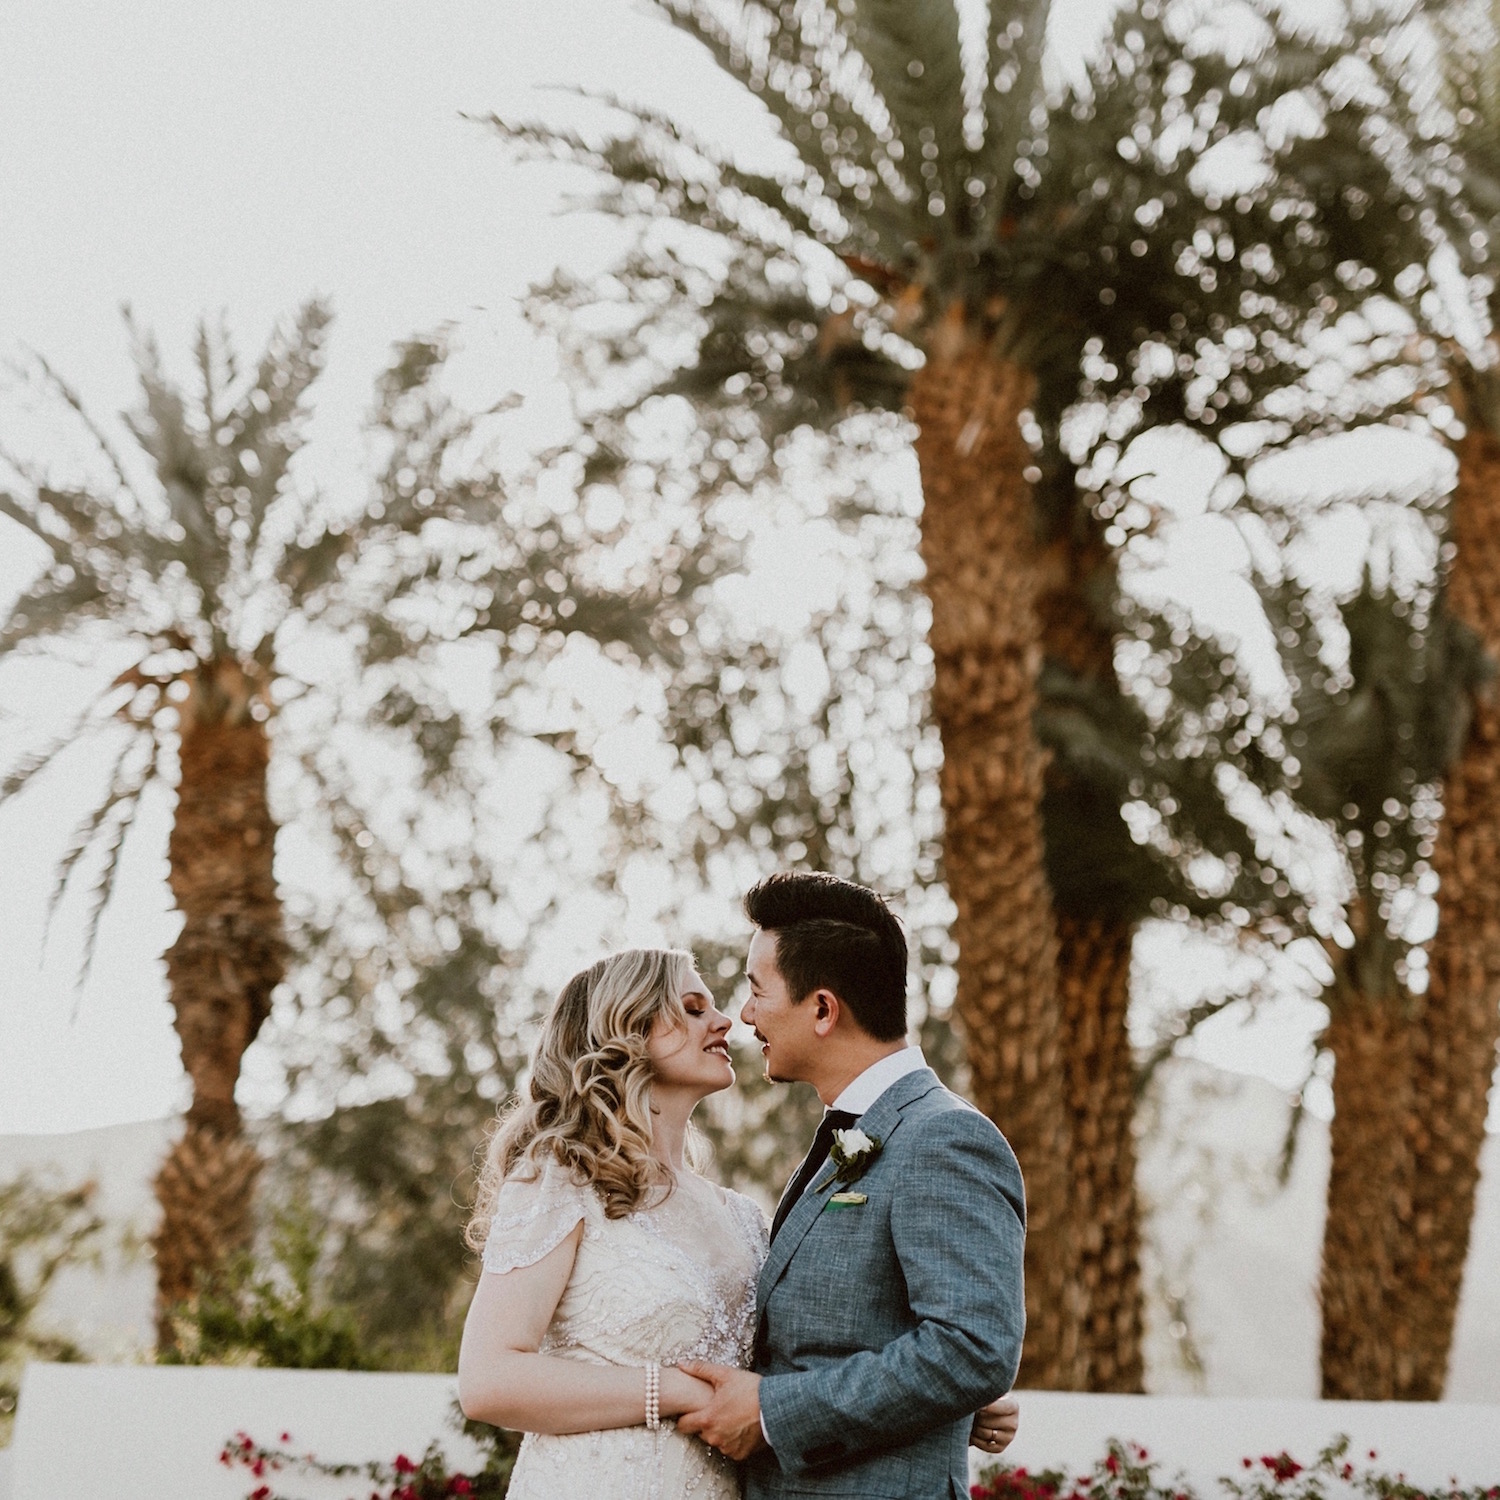 Maisie & David - In the lead-up to the wedding, Wes was super easy to work with and helped us along in creating playlists that would serve as guides for our events. In the end, he had our guests up and dancing until we closed the place down... It was epic. - David I.(La Quinta Resort - Yelp)